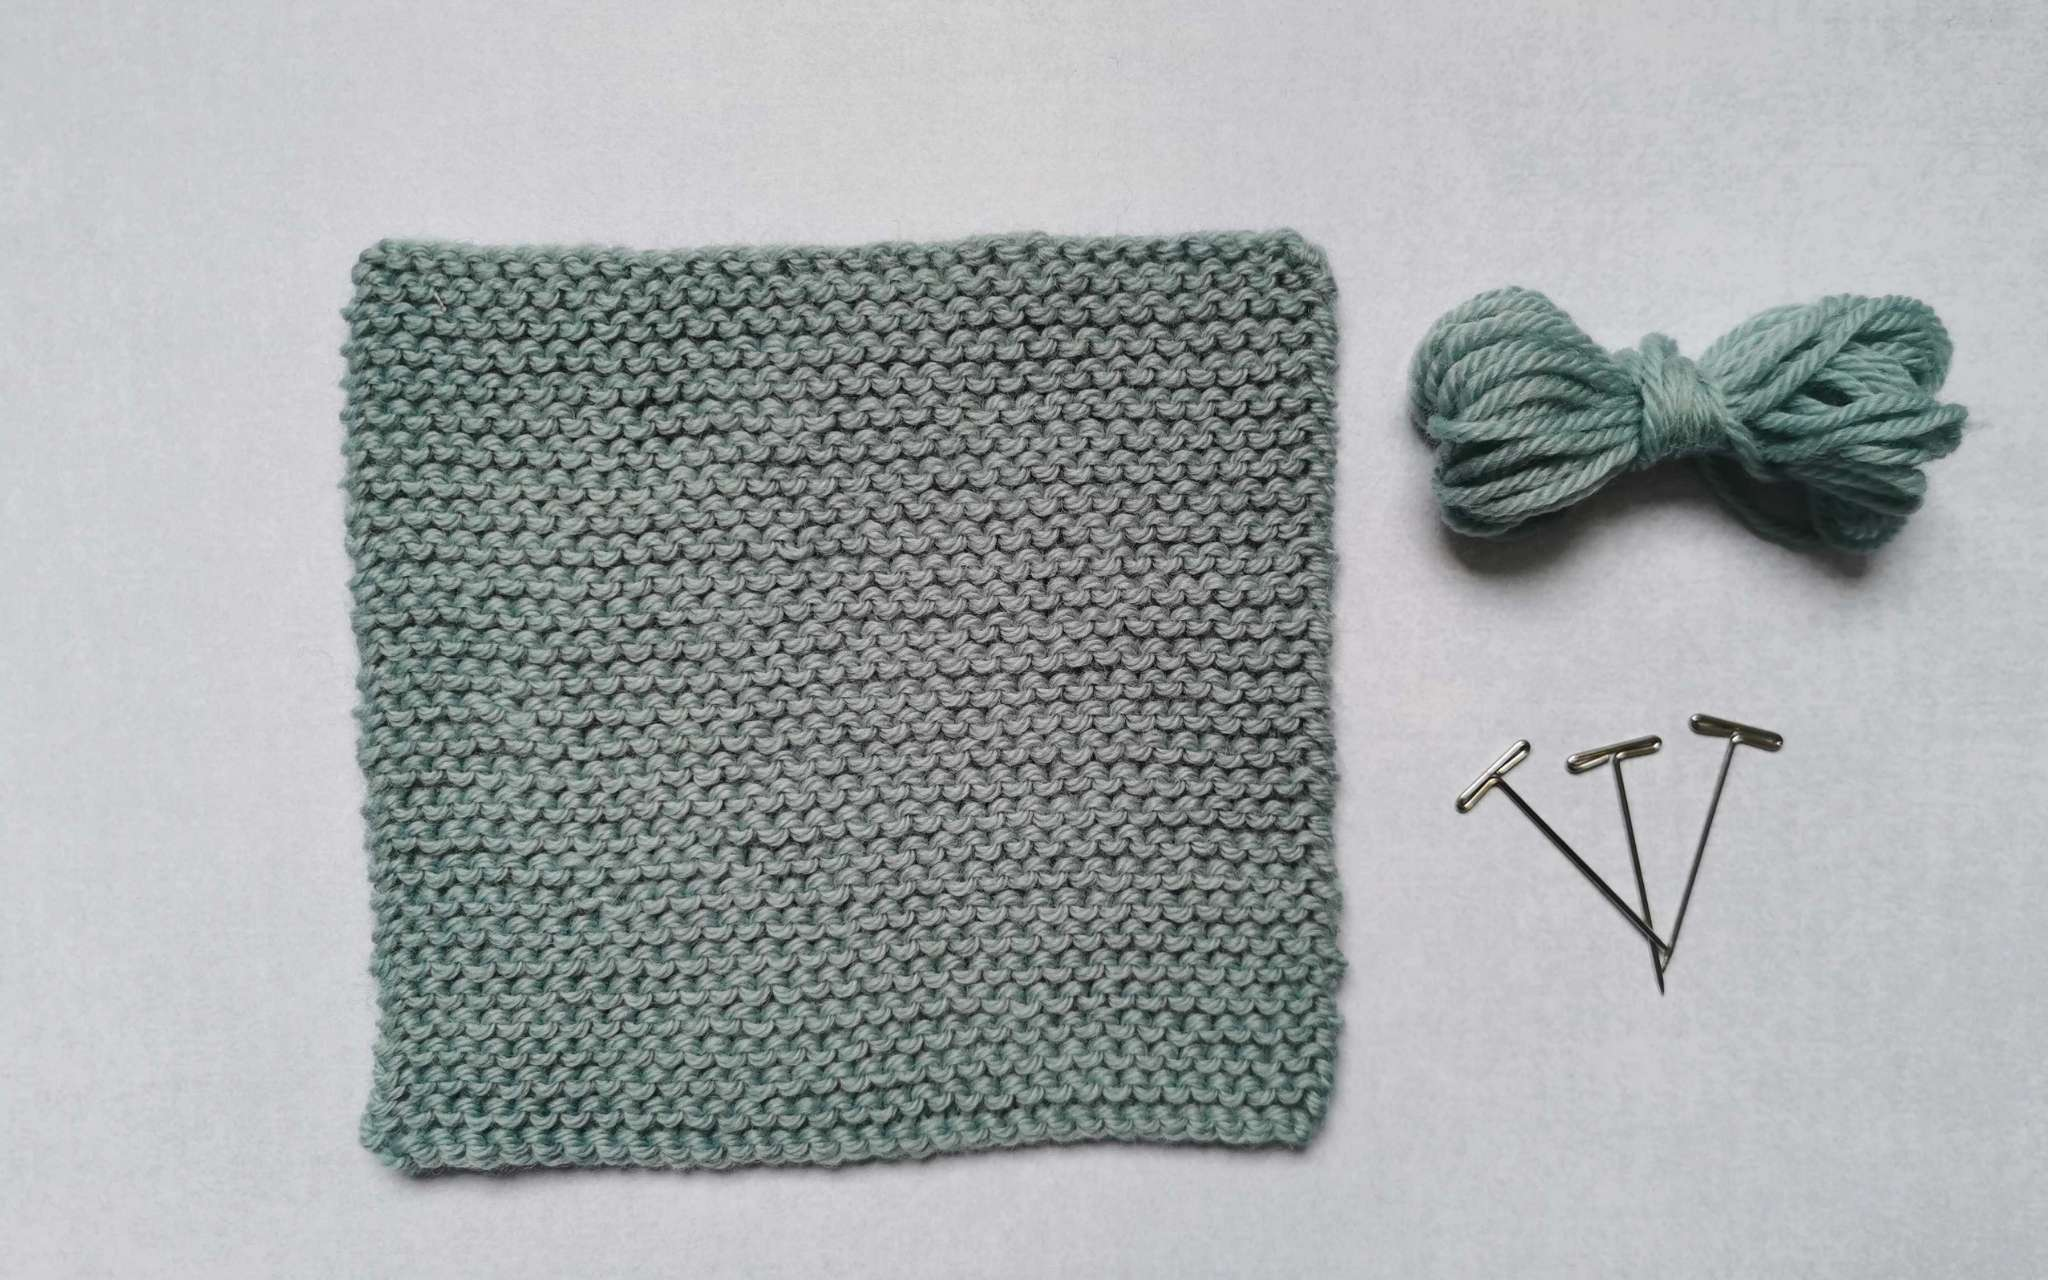 A square swatch of stocking stitch in pale blue, with some bundled up spare yarn and t-pins laying beside it to the right.